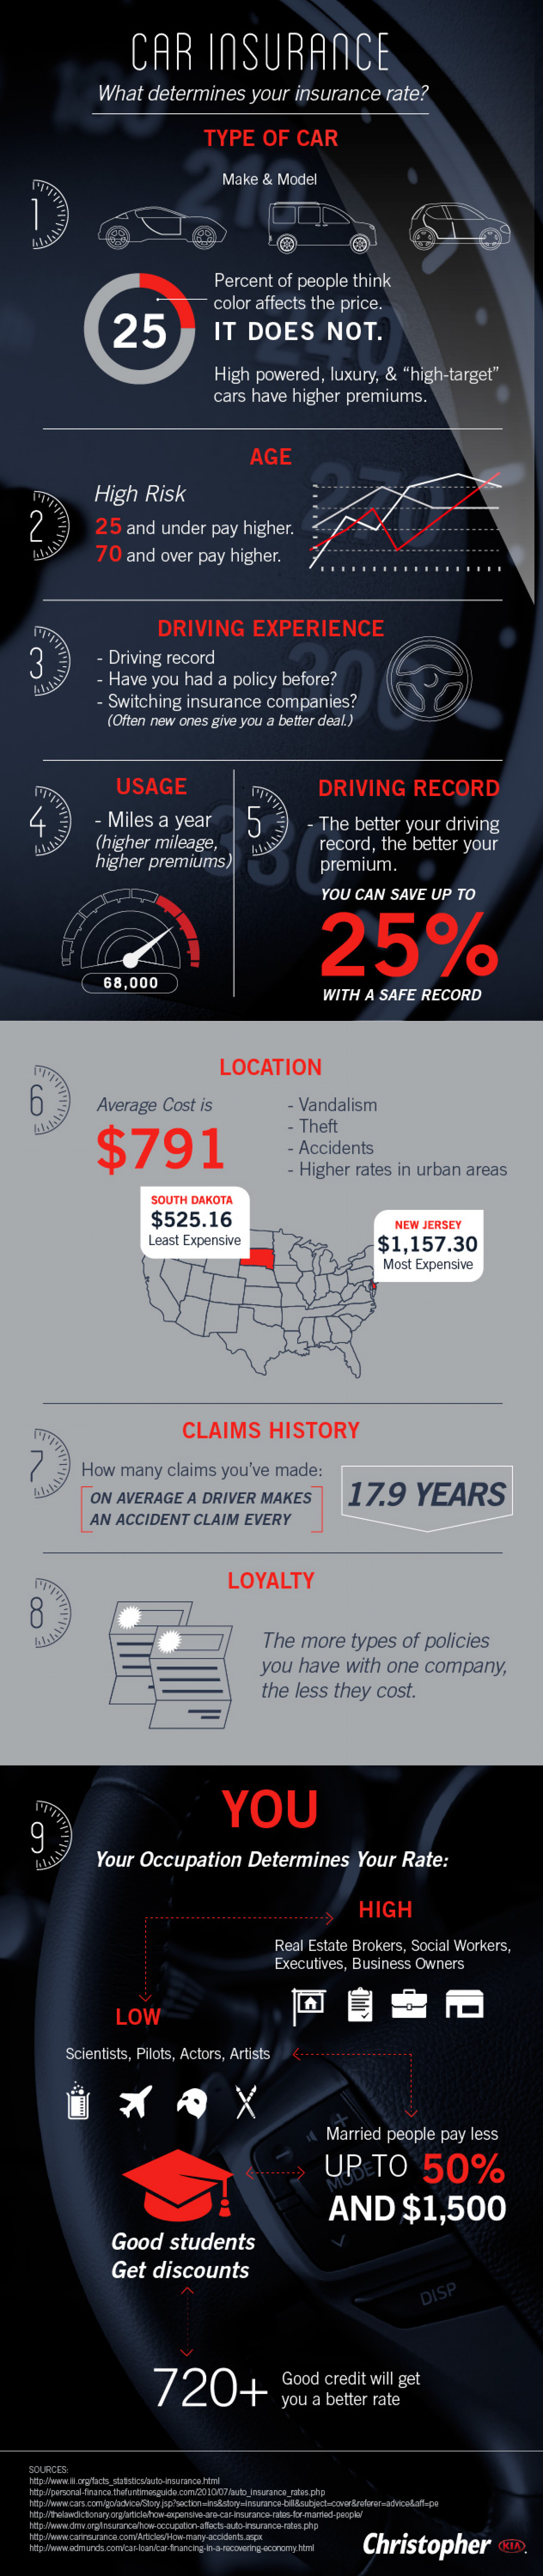 What Determines Your Car Insurance Rates? Infographic